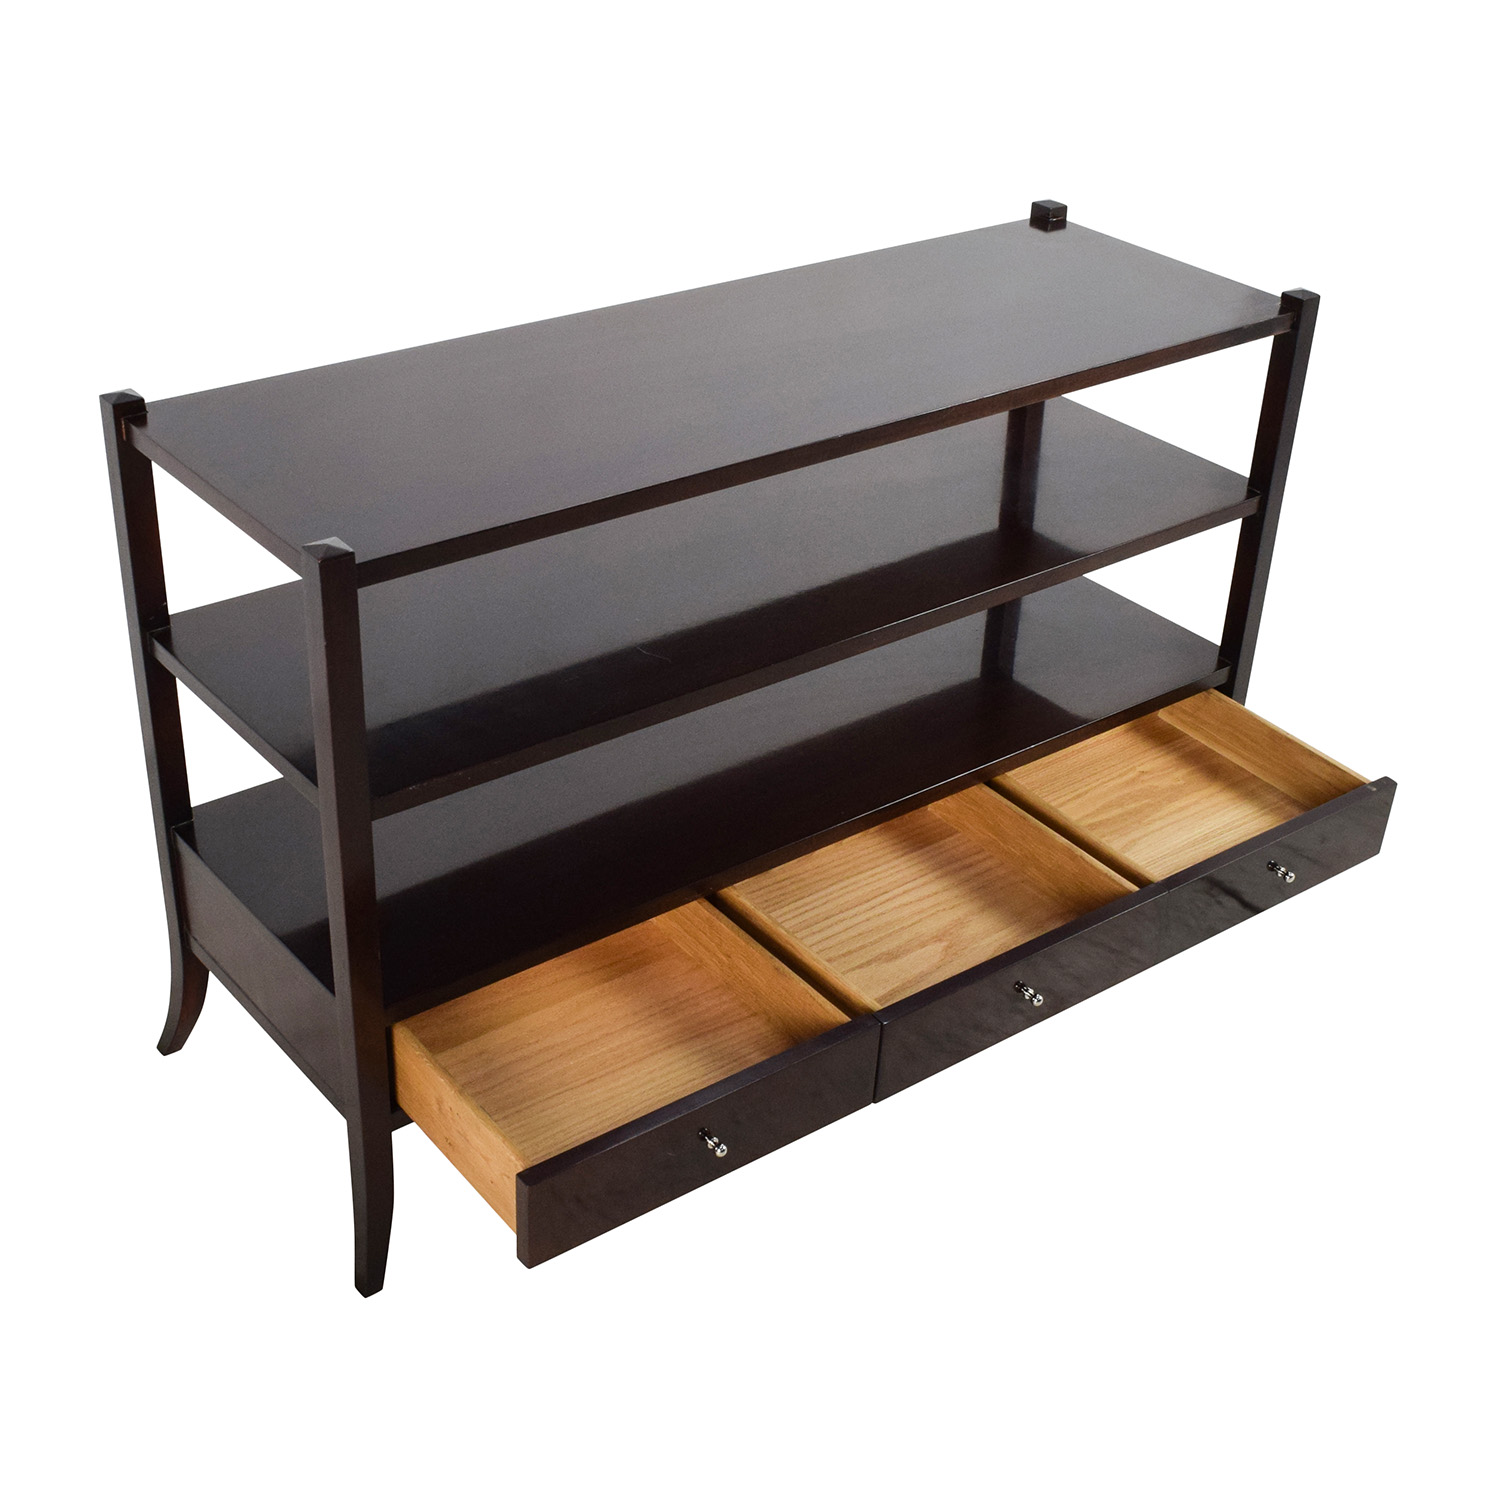 77 off baker baker sofa side table storage for Side table for sectional sofa